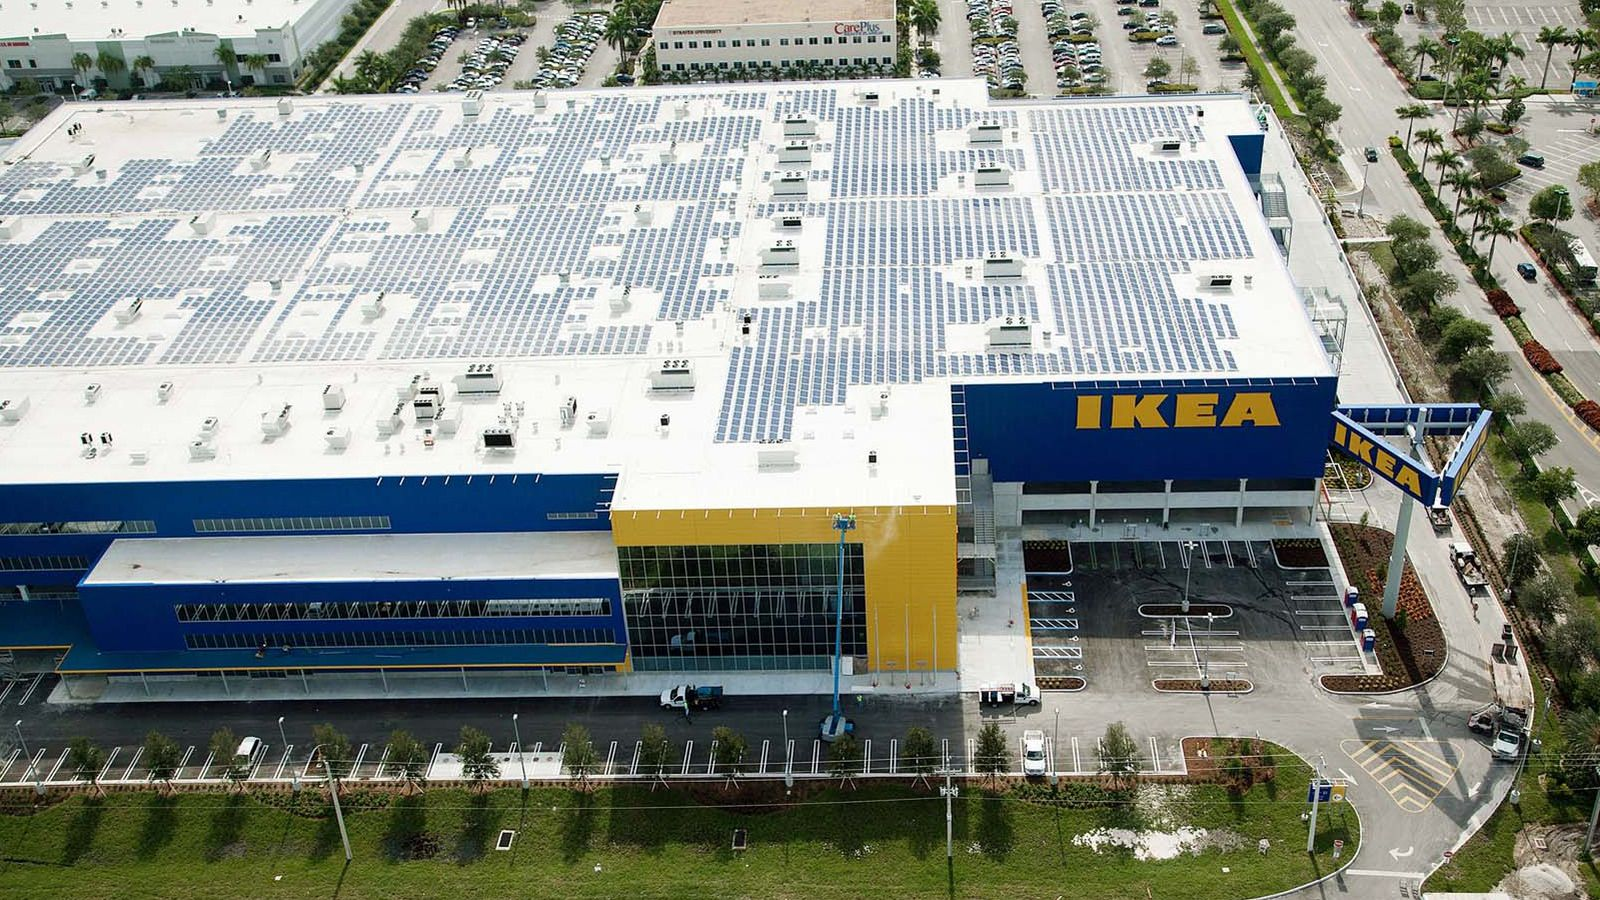 Ikea miami to open on august 27 lineup starts two days for Restaurant ikea miami